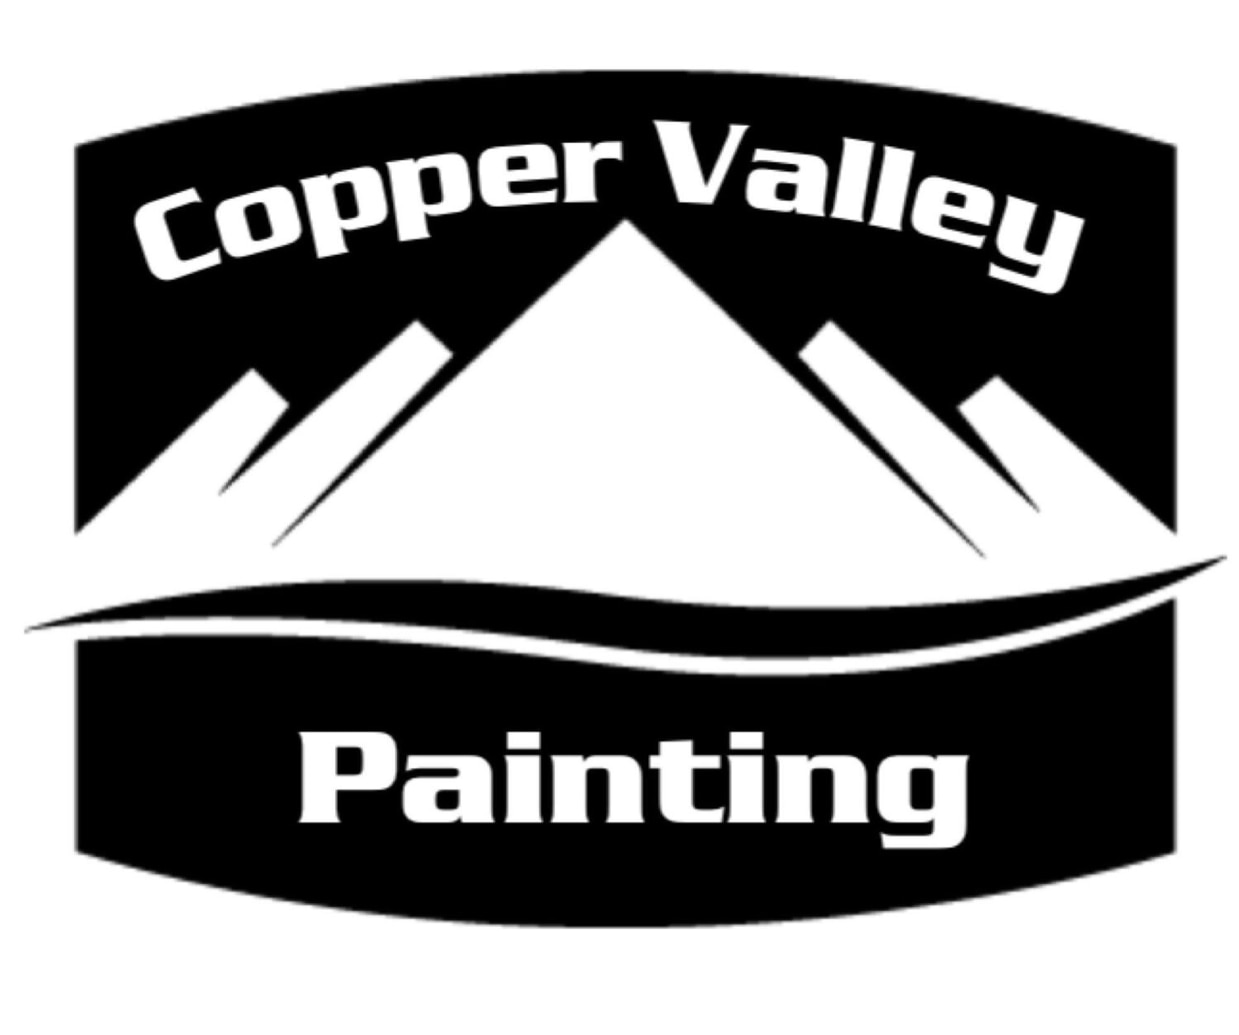 Copper Valley Painting logo